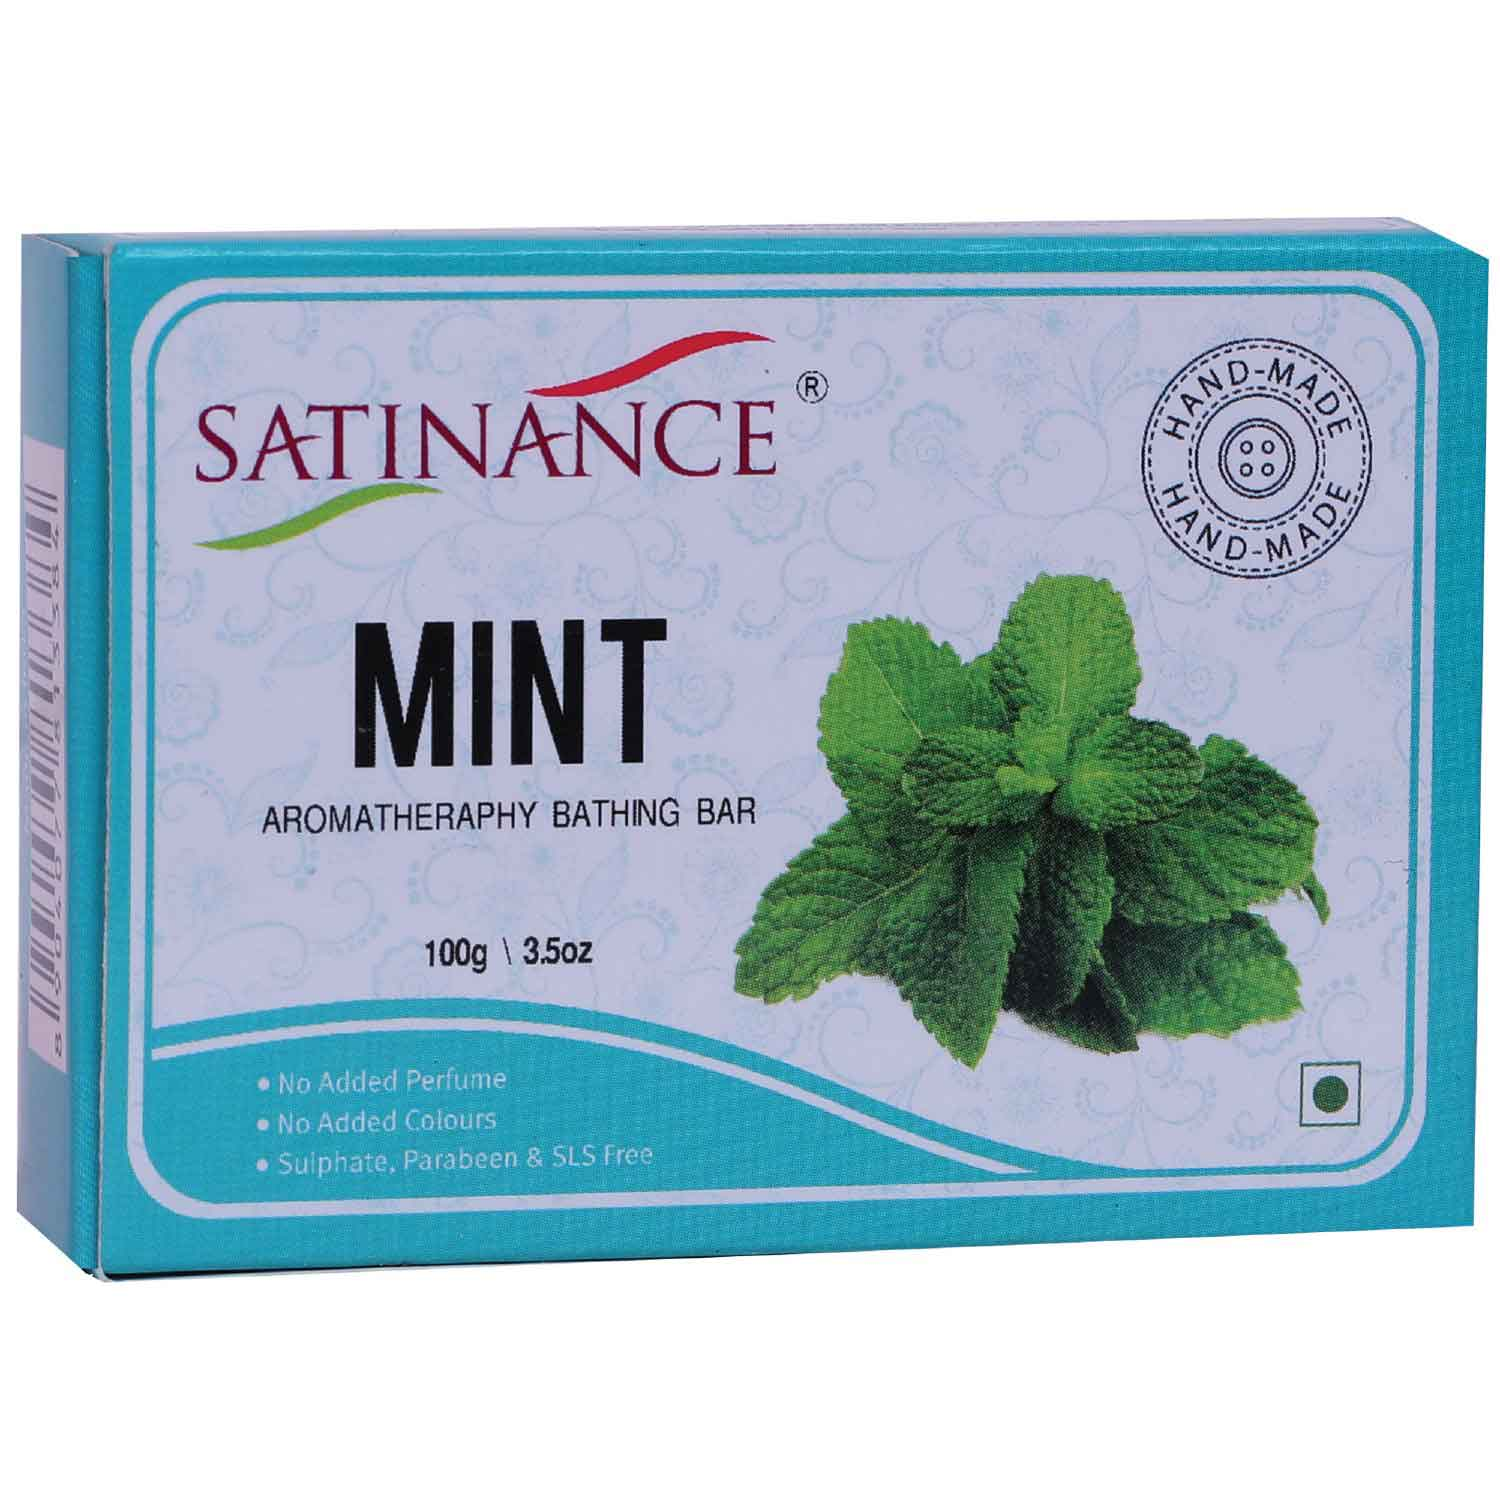 Mint Aromatherapy Bathing Bar (Transparent Soap)